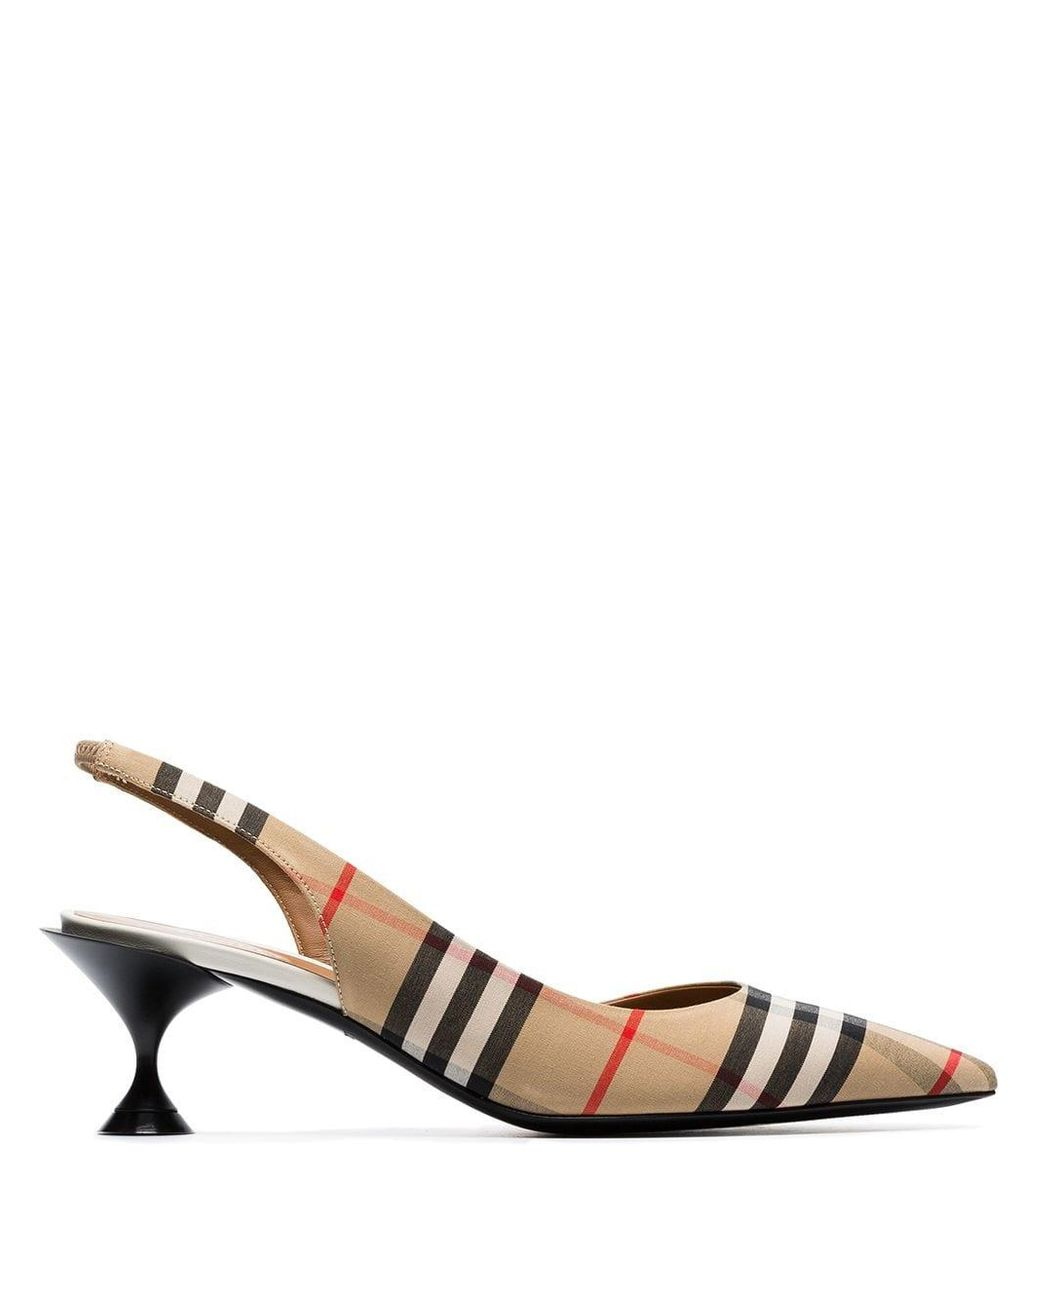 1275a8aac9 Burberry Vintage Check Leticia Pumps in Natural - Save 6% - Lyst